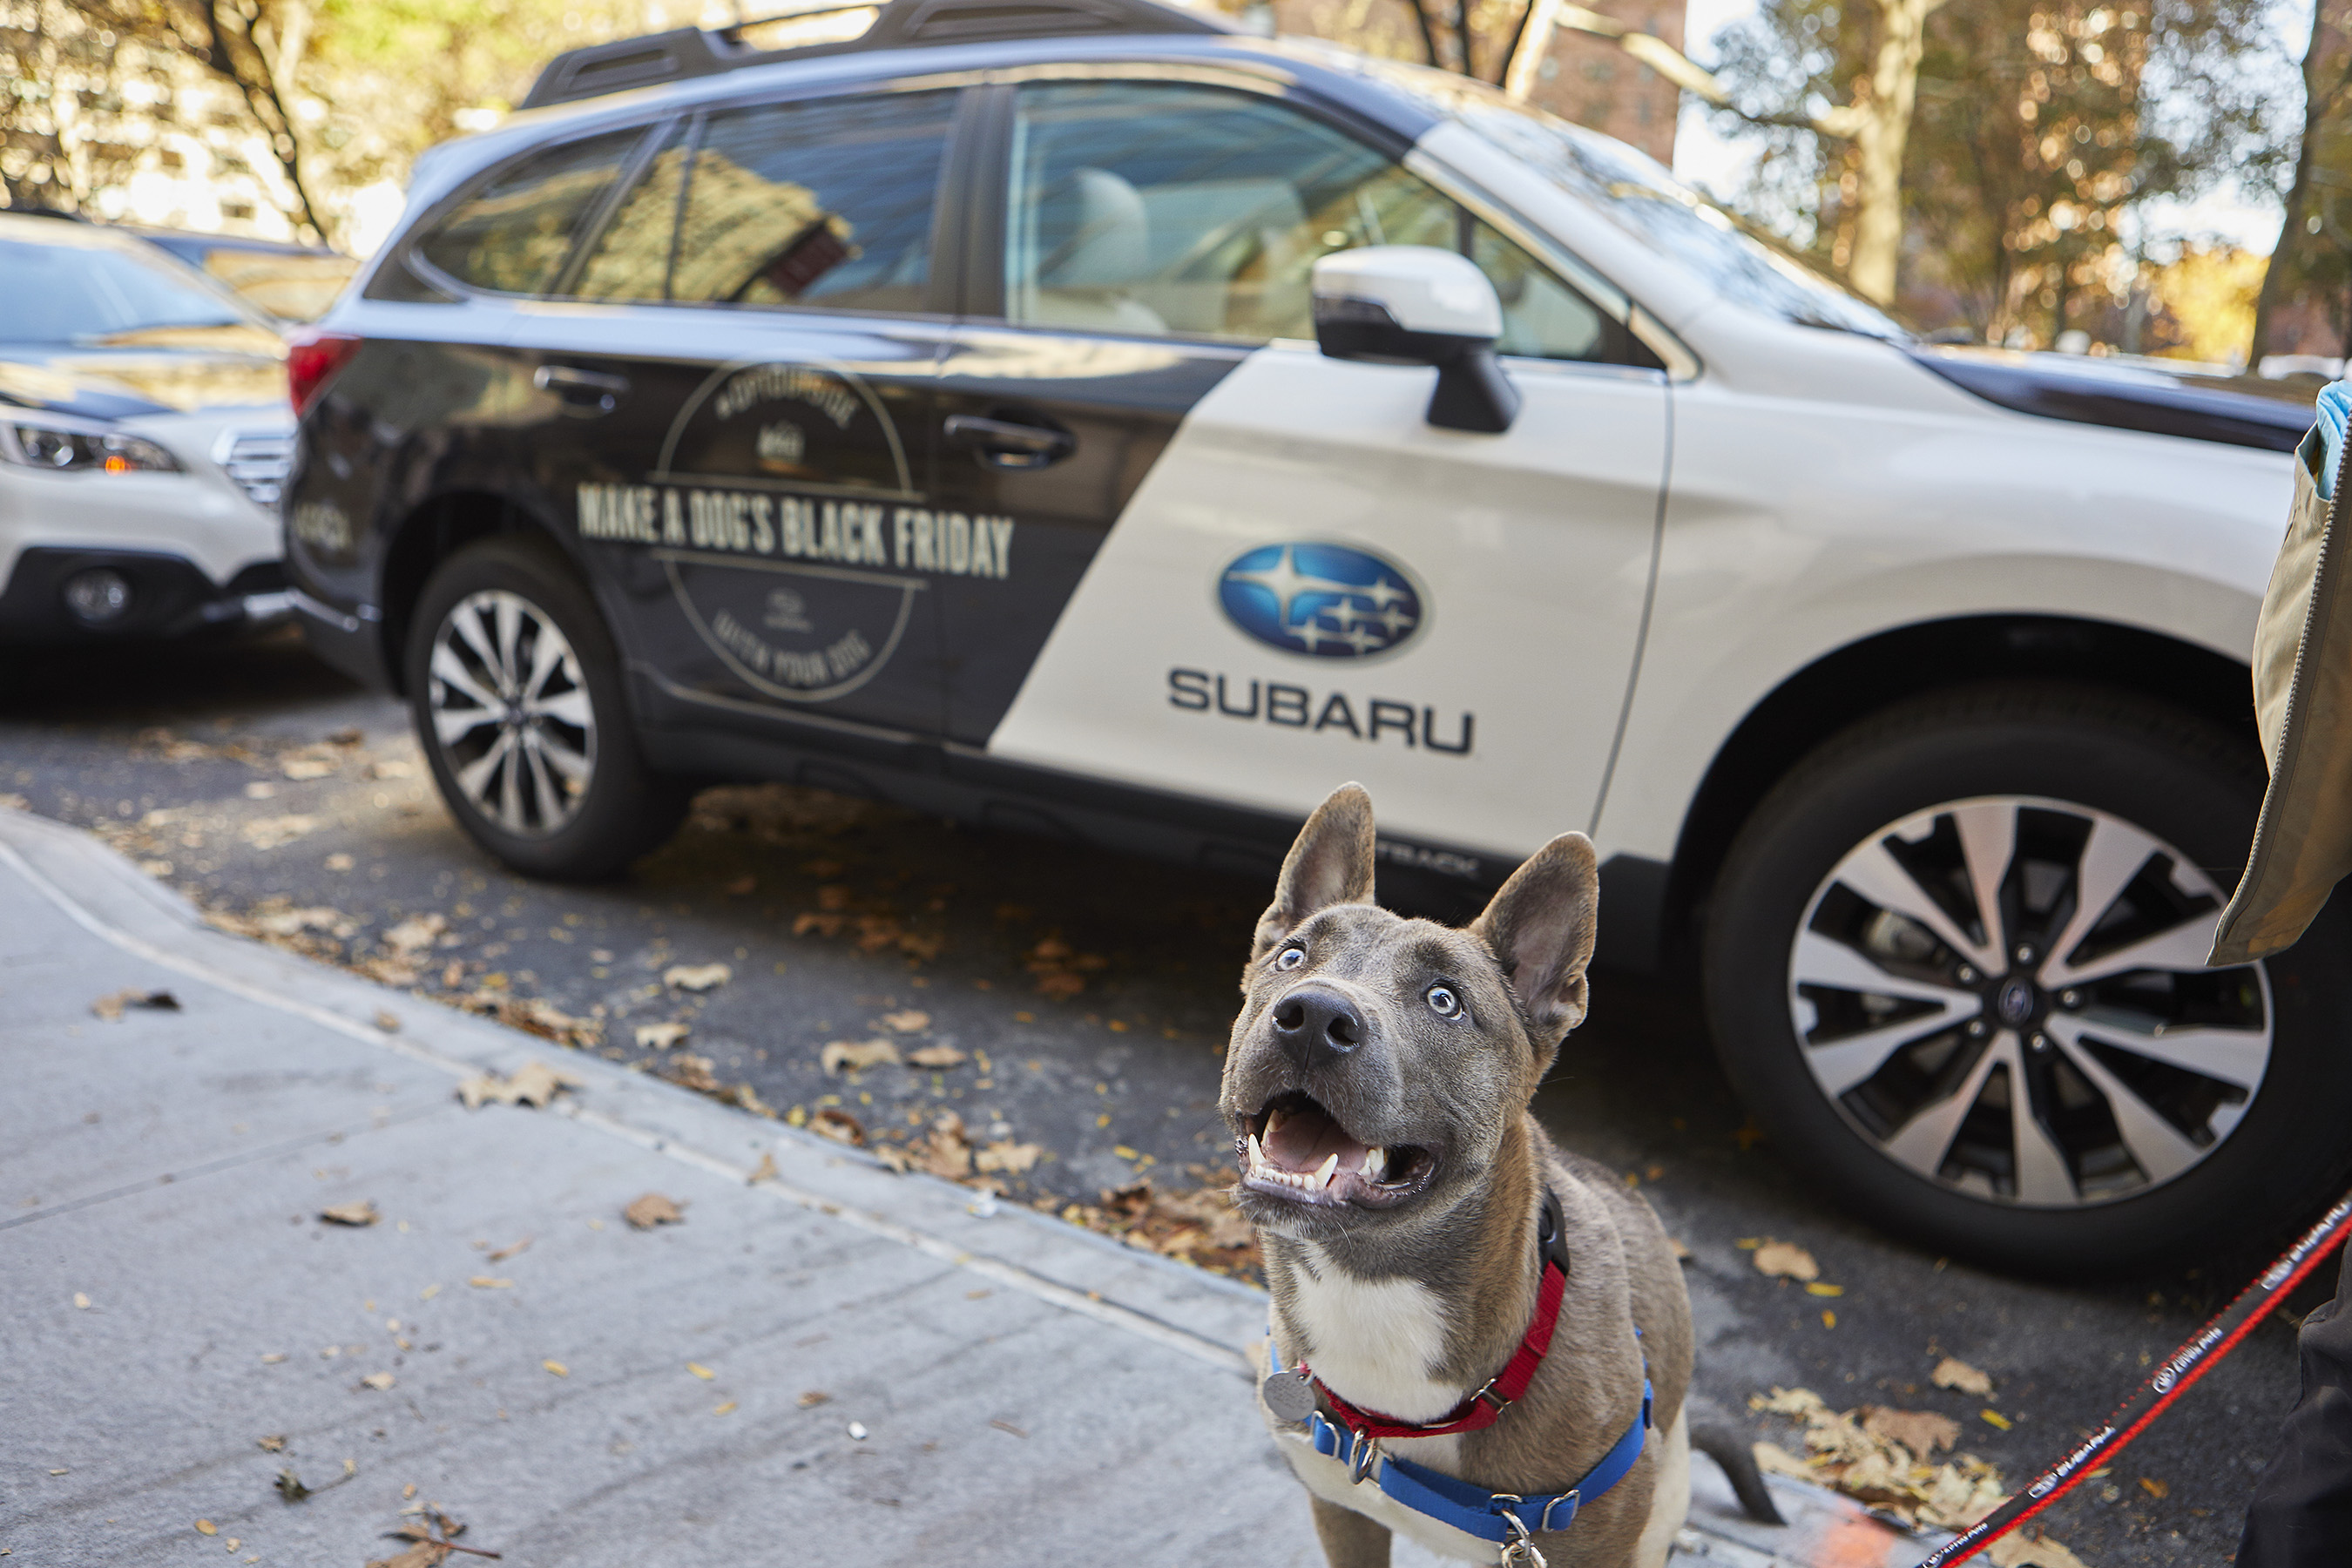 Local NY-based shelter dogs are ready to #OptOutside thanks to Subaru and the ASPCA